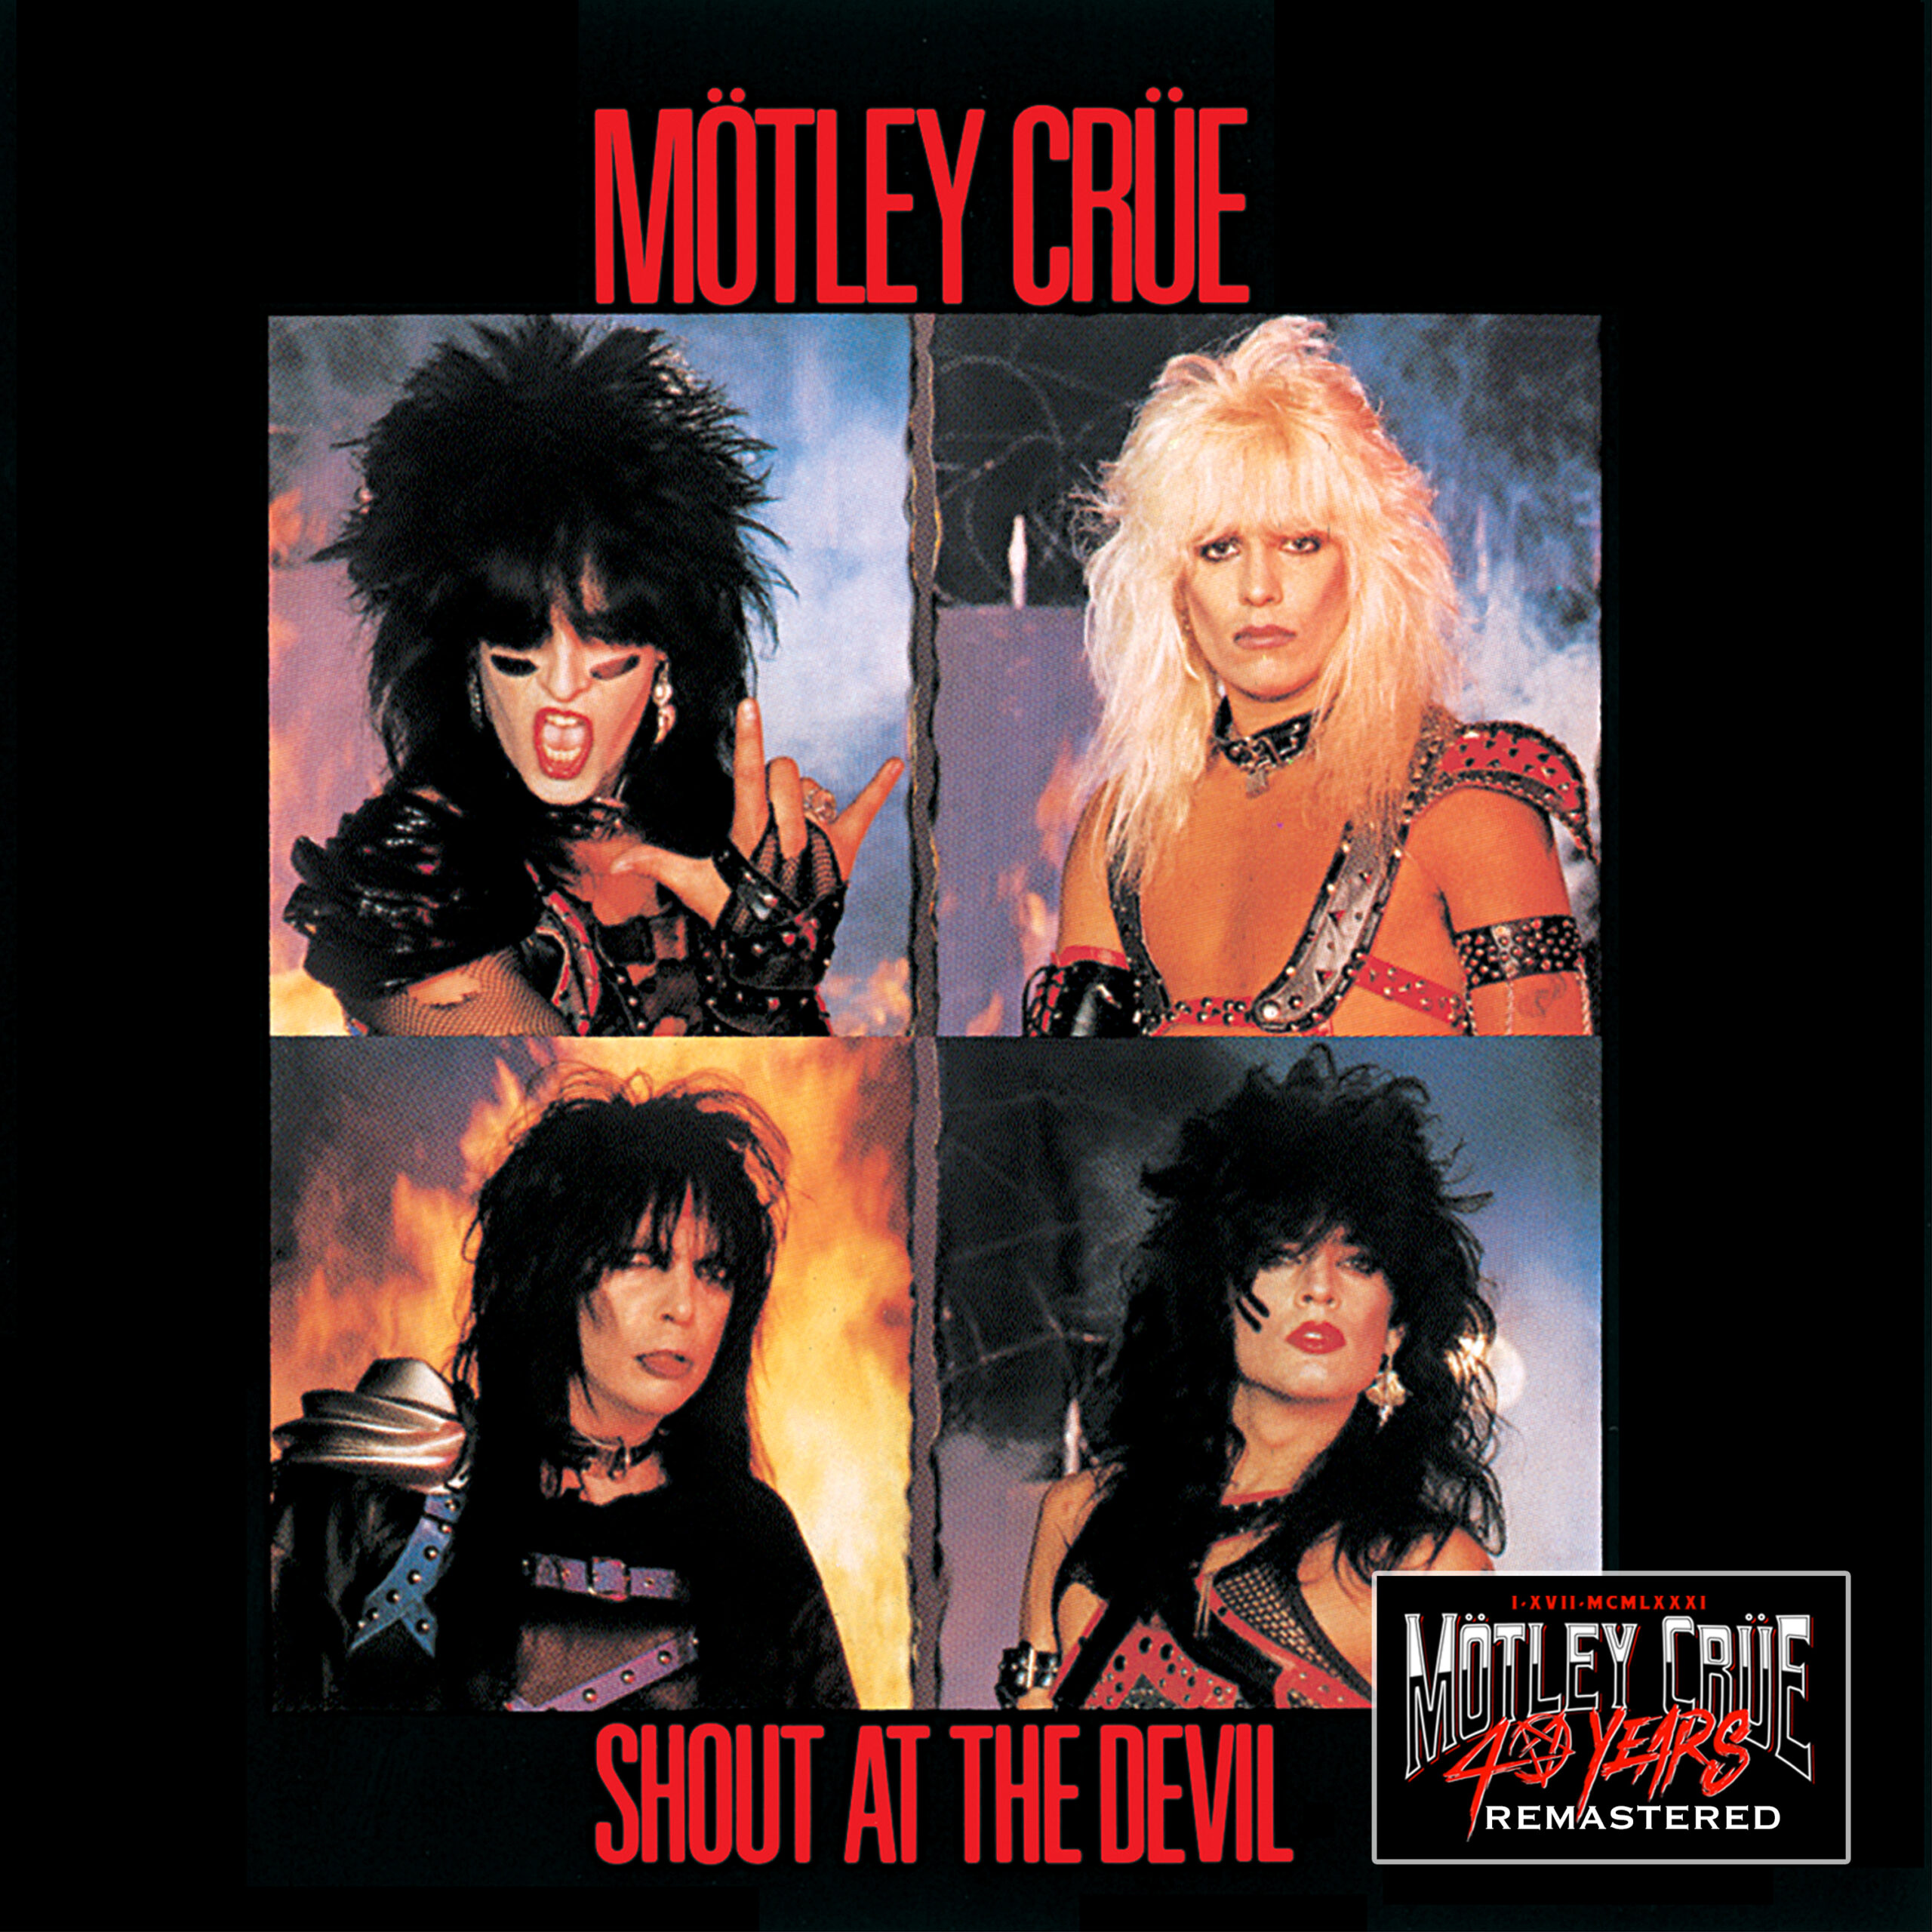 Motley Crue via Better Noise Music for use by 360 Magazine